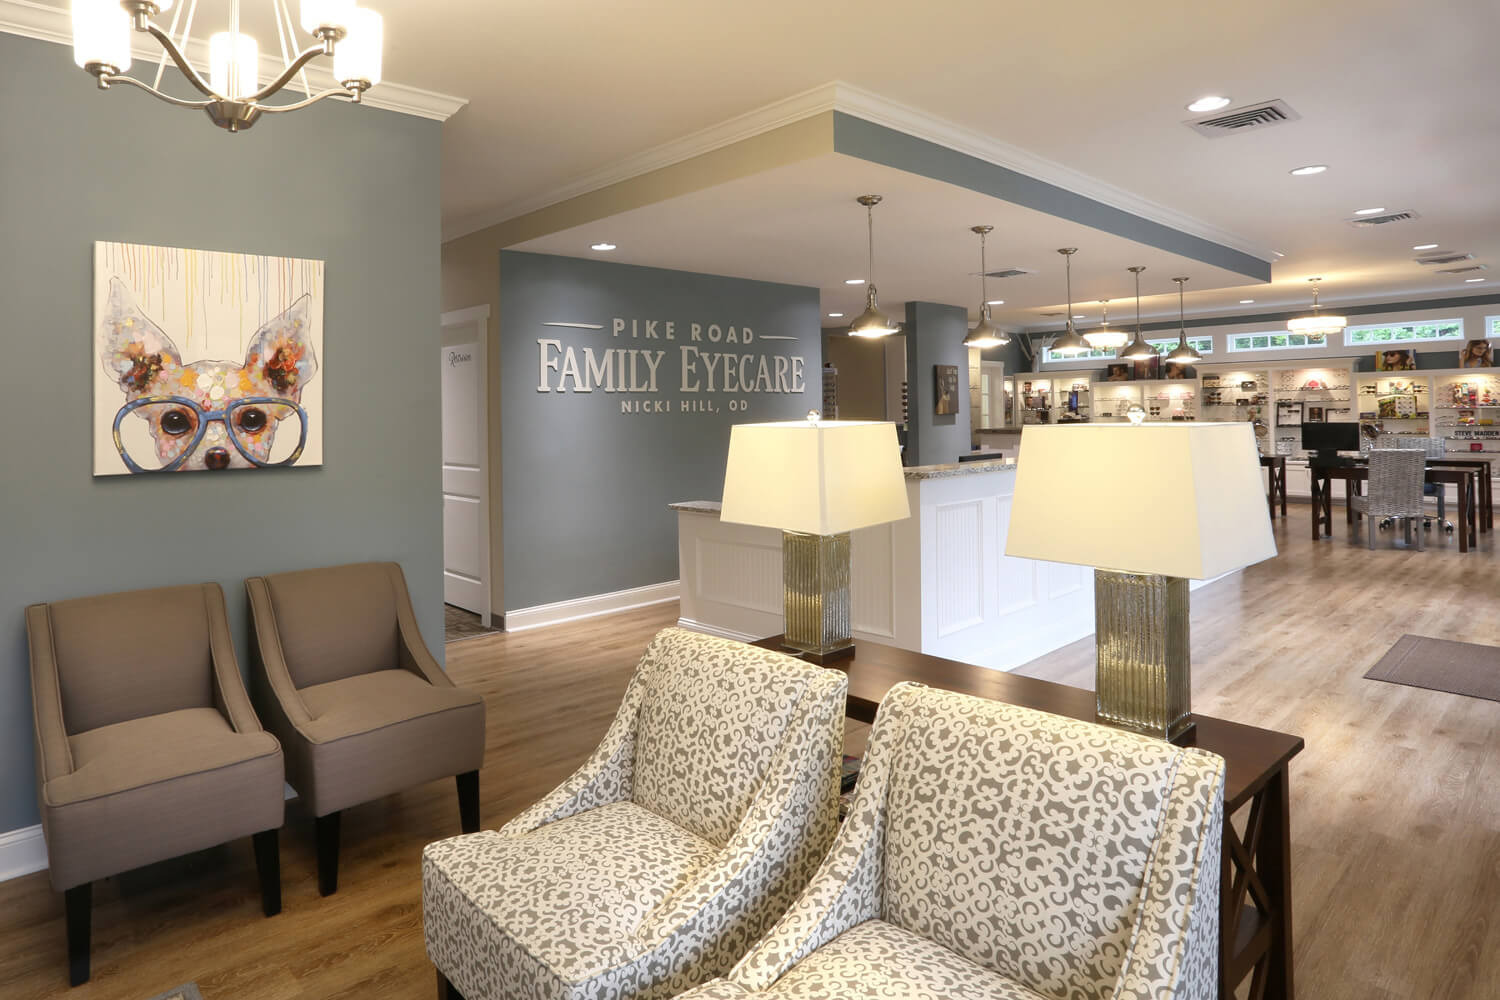 Pike Road Family Eyecare Designed by Foshee Architecture – Close up of Seating Area